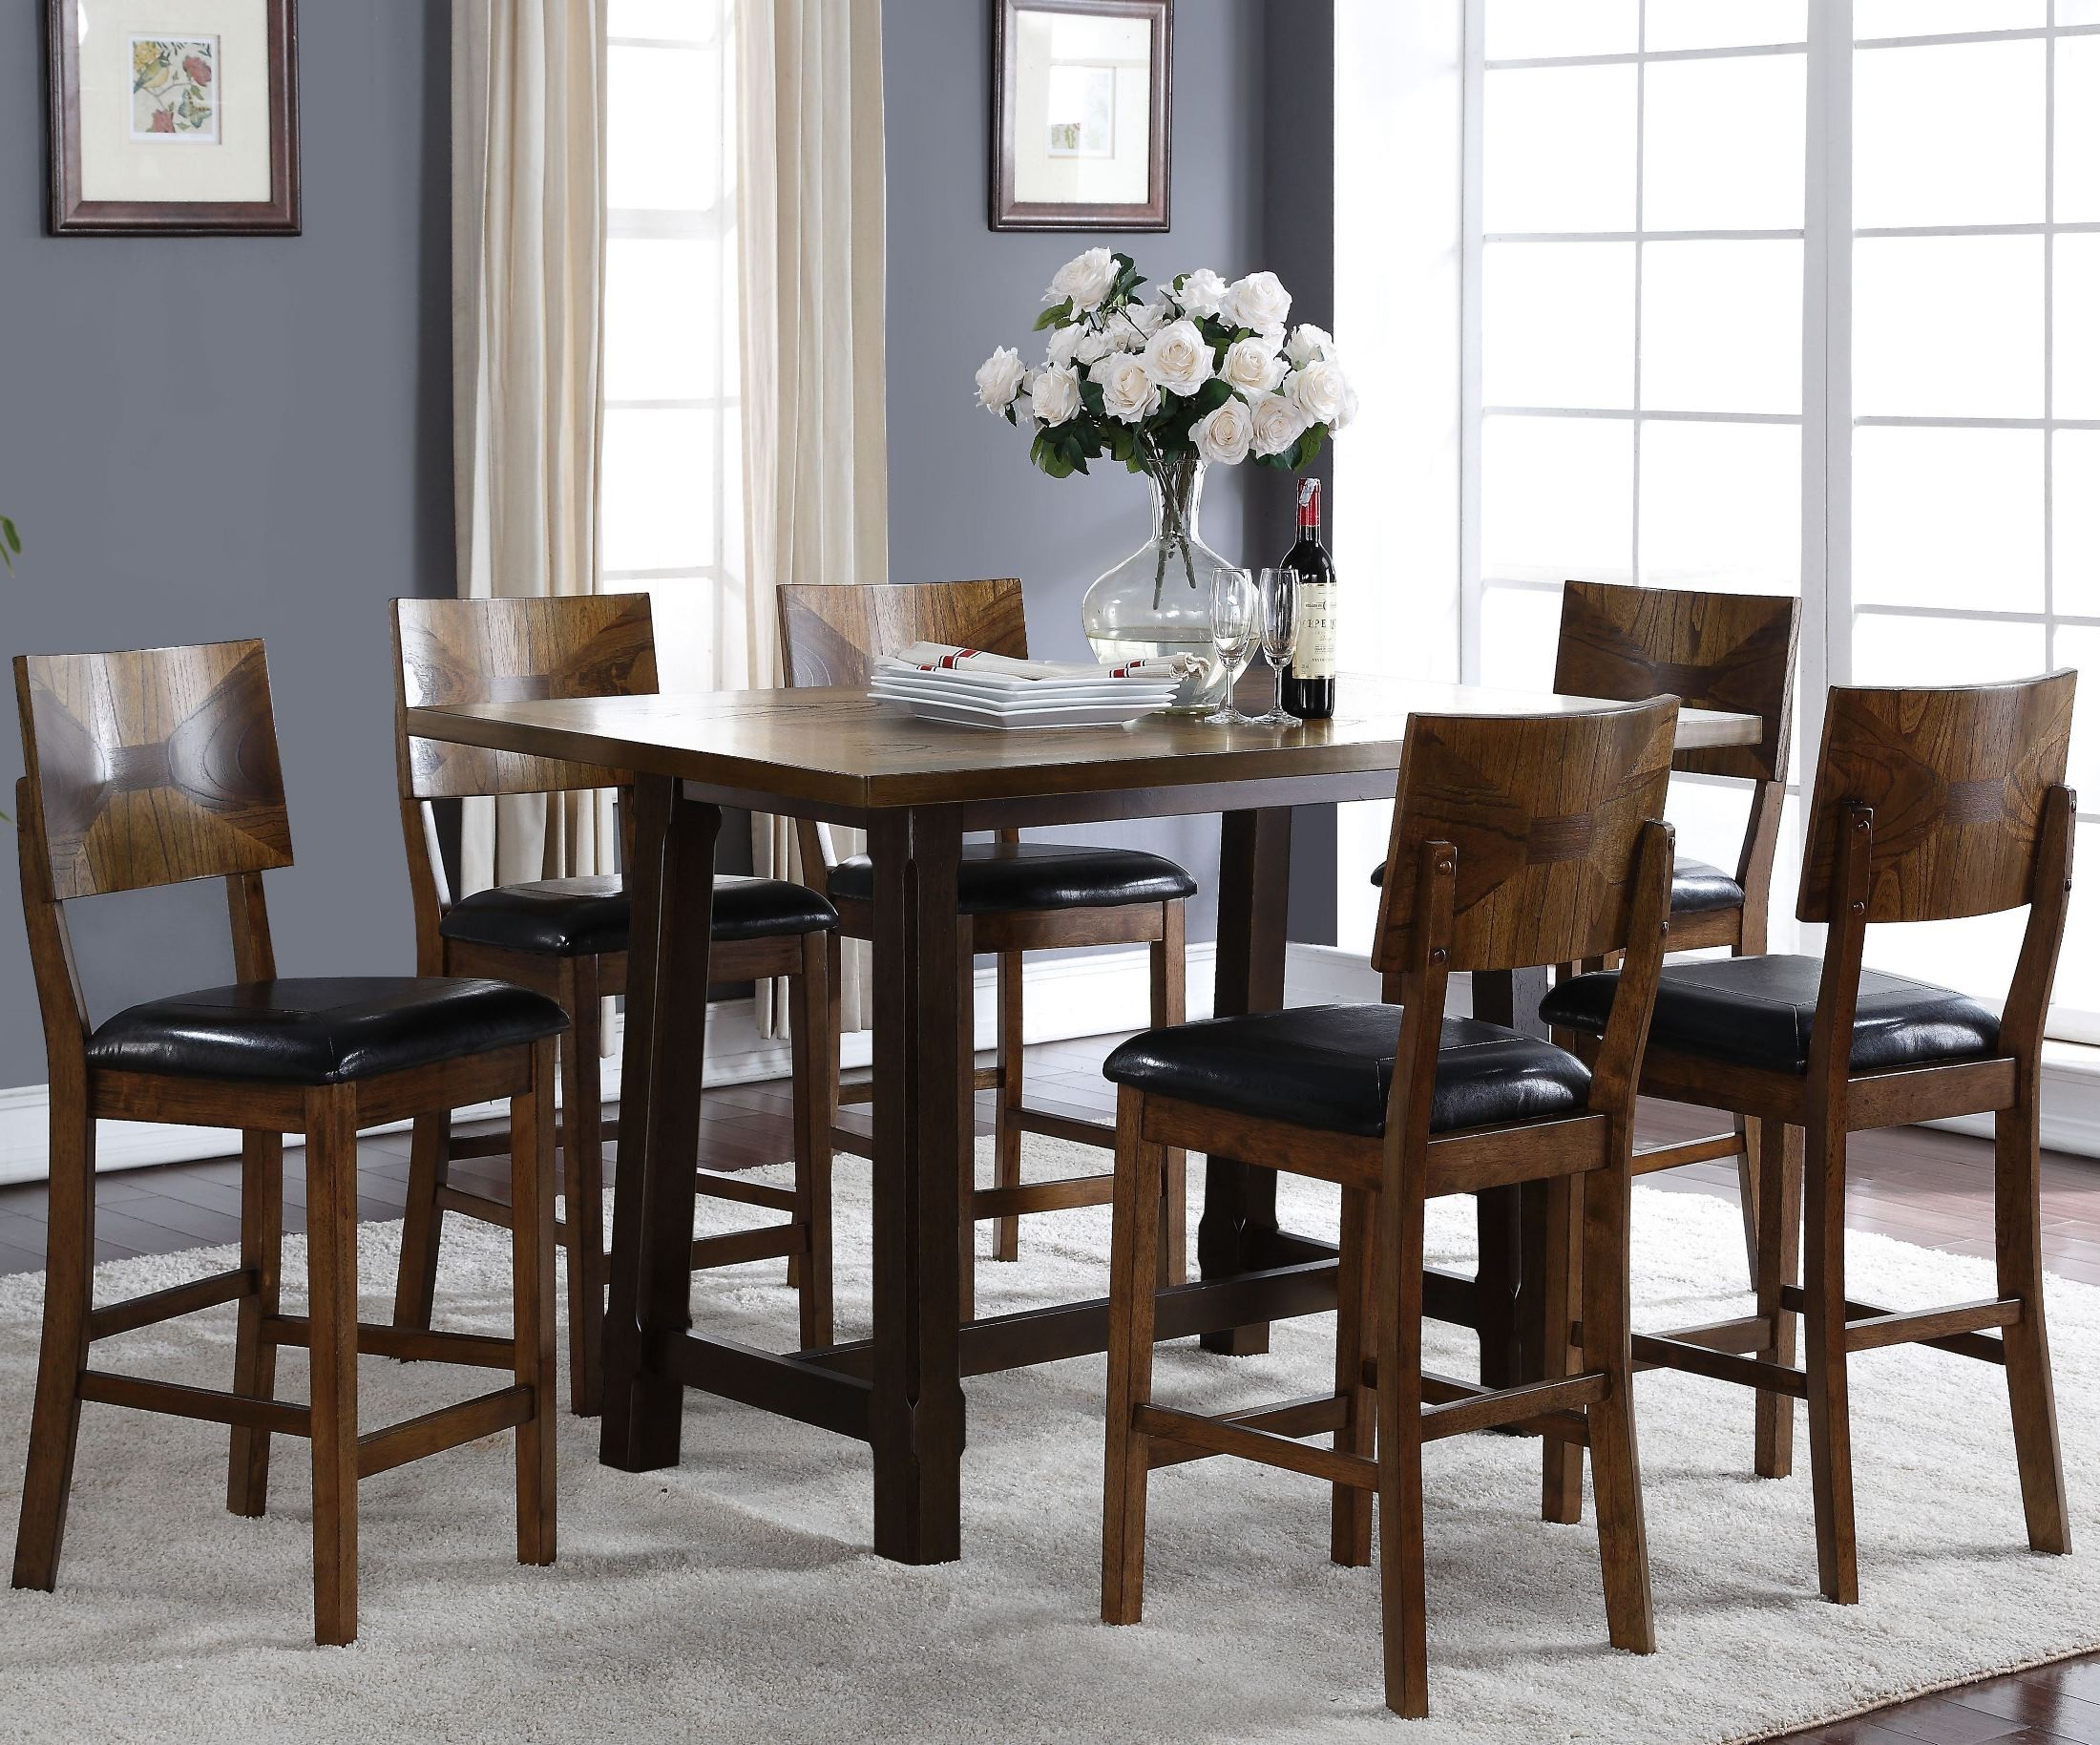 2 Tone Dining Room Sets Of Gillian Two Tone Counter Height Dining Room Set From New